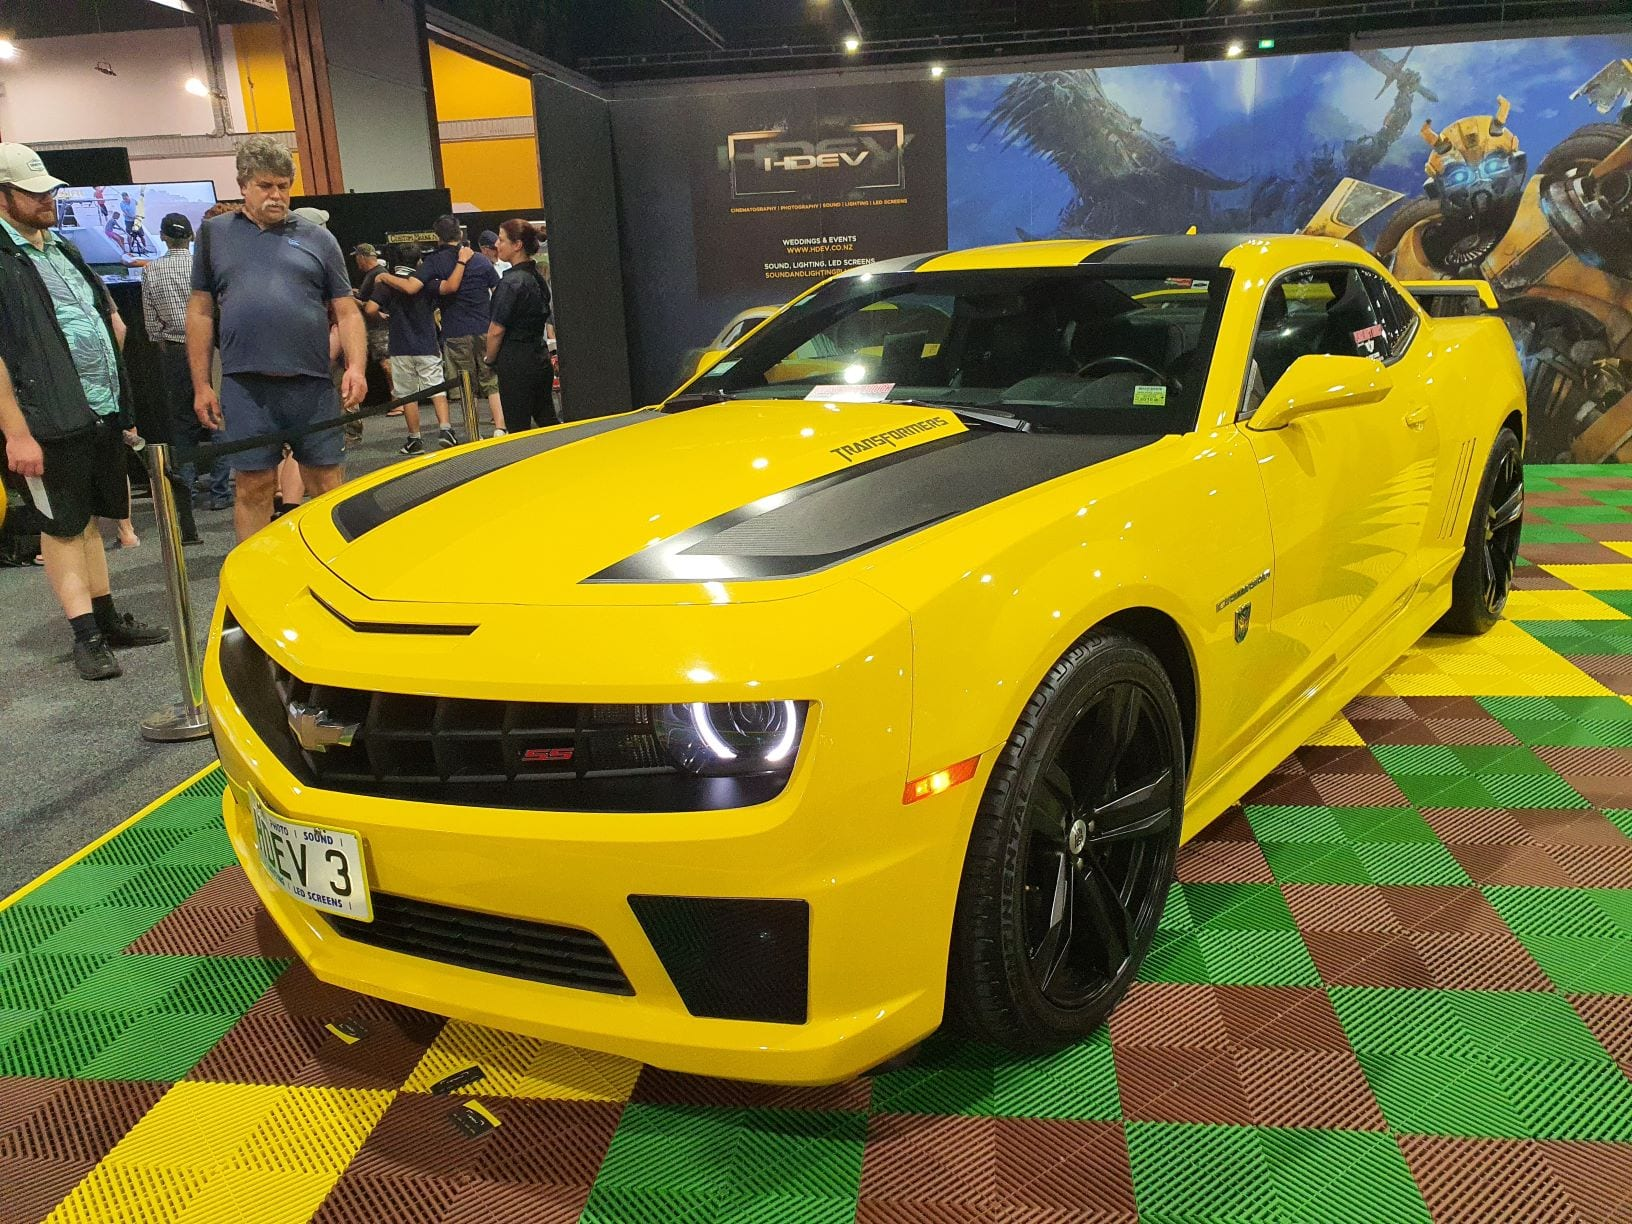 It's Bumblebee from Transformers!